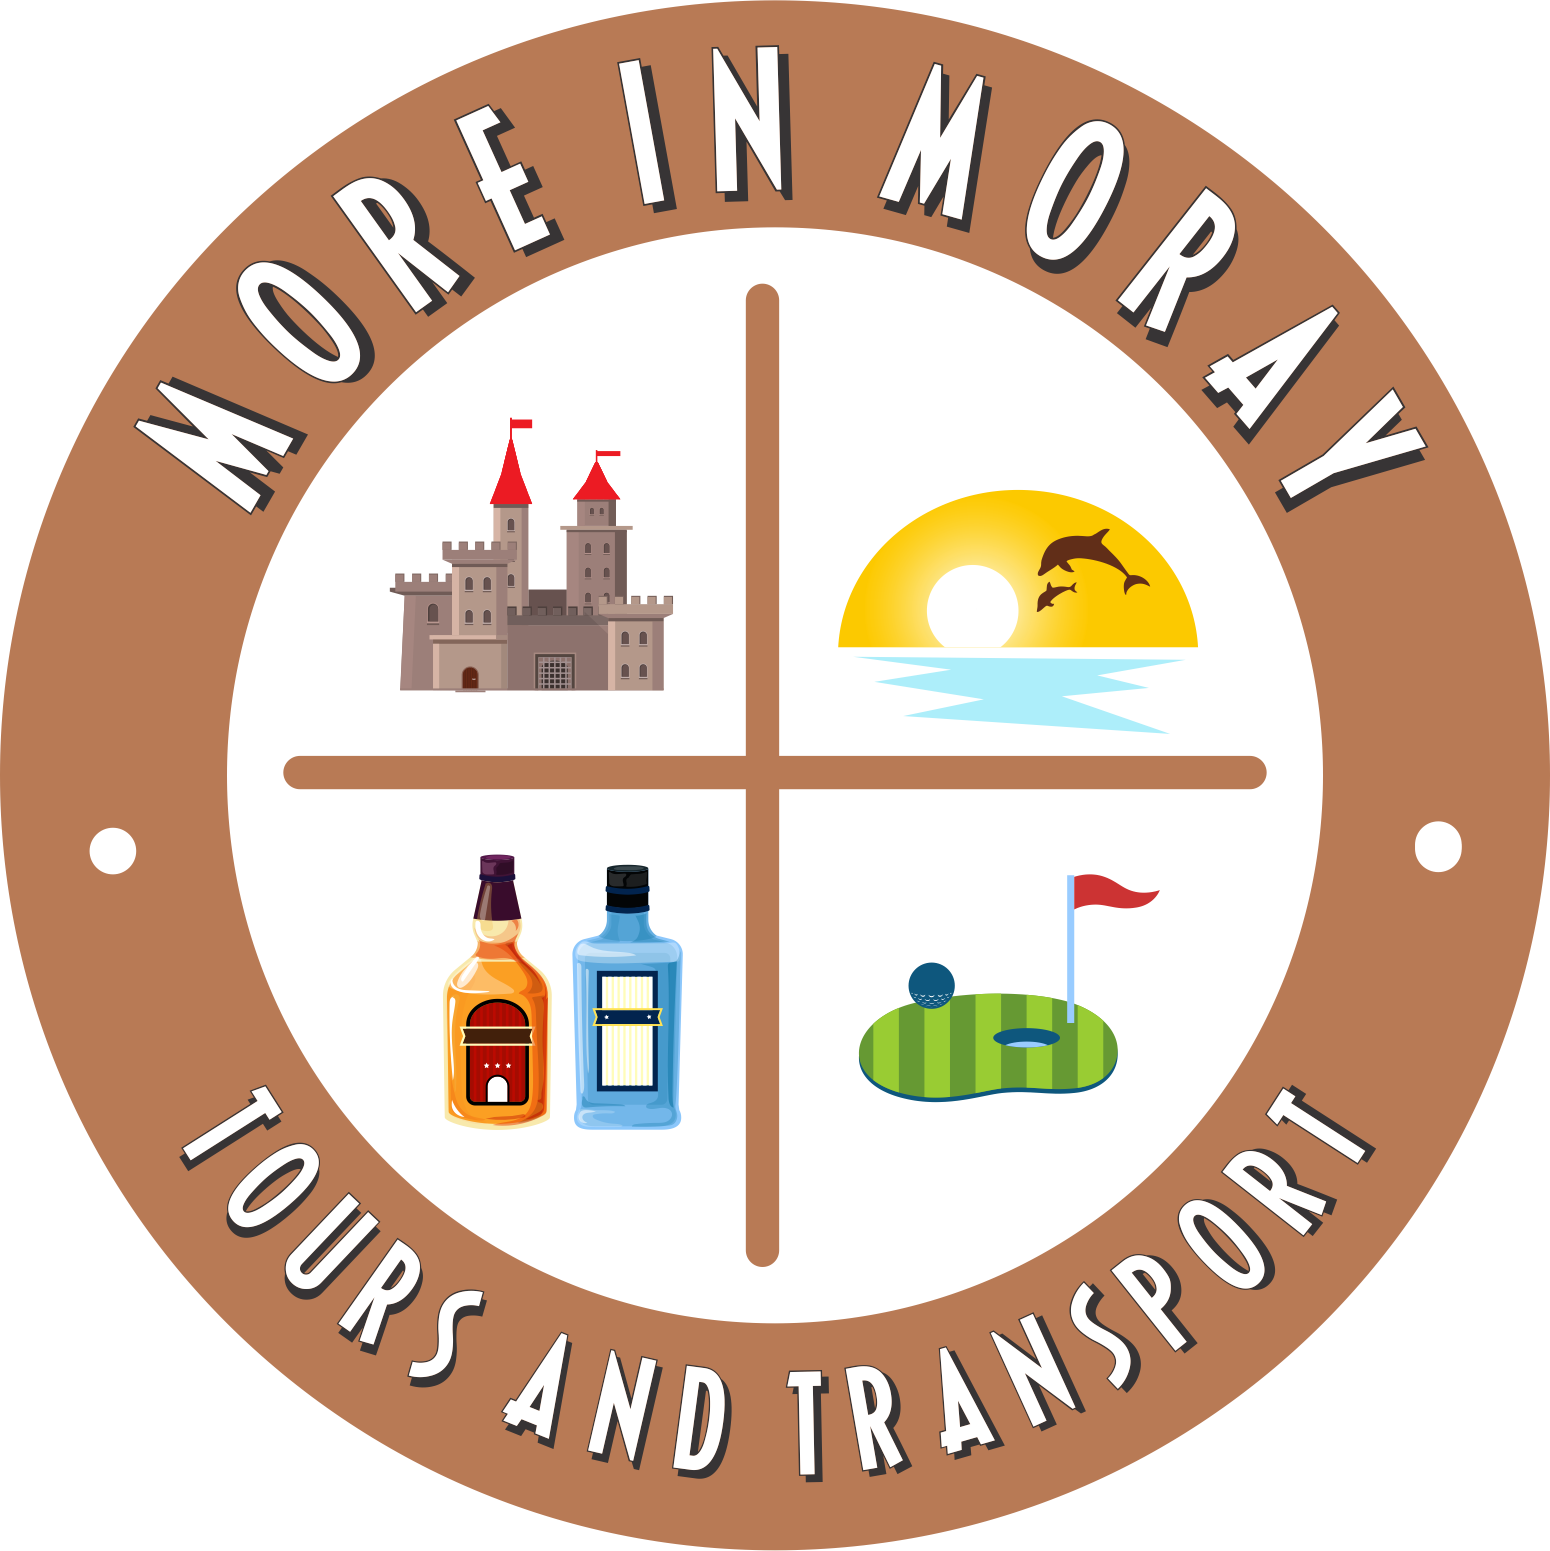 More in Moray Tours and Transport | Culture and Heritage - More in Moray Tours and Transport